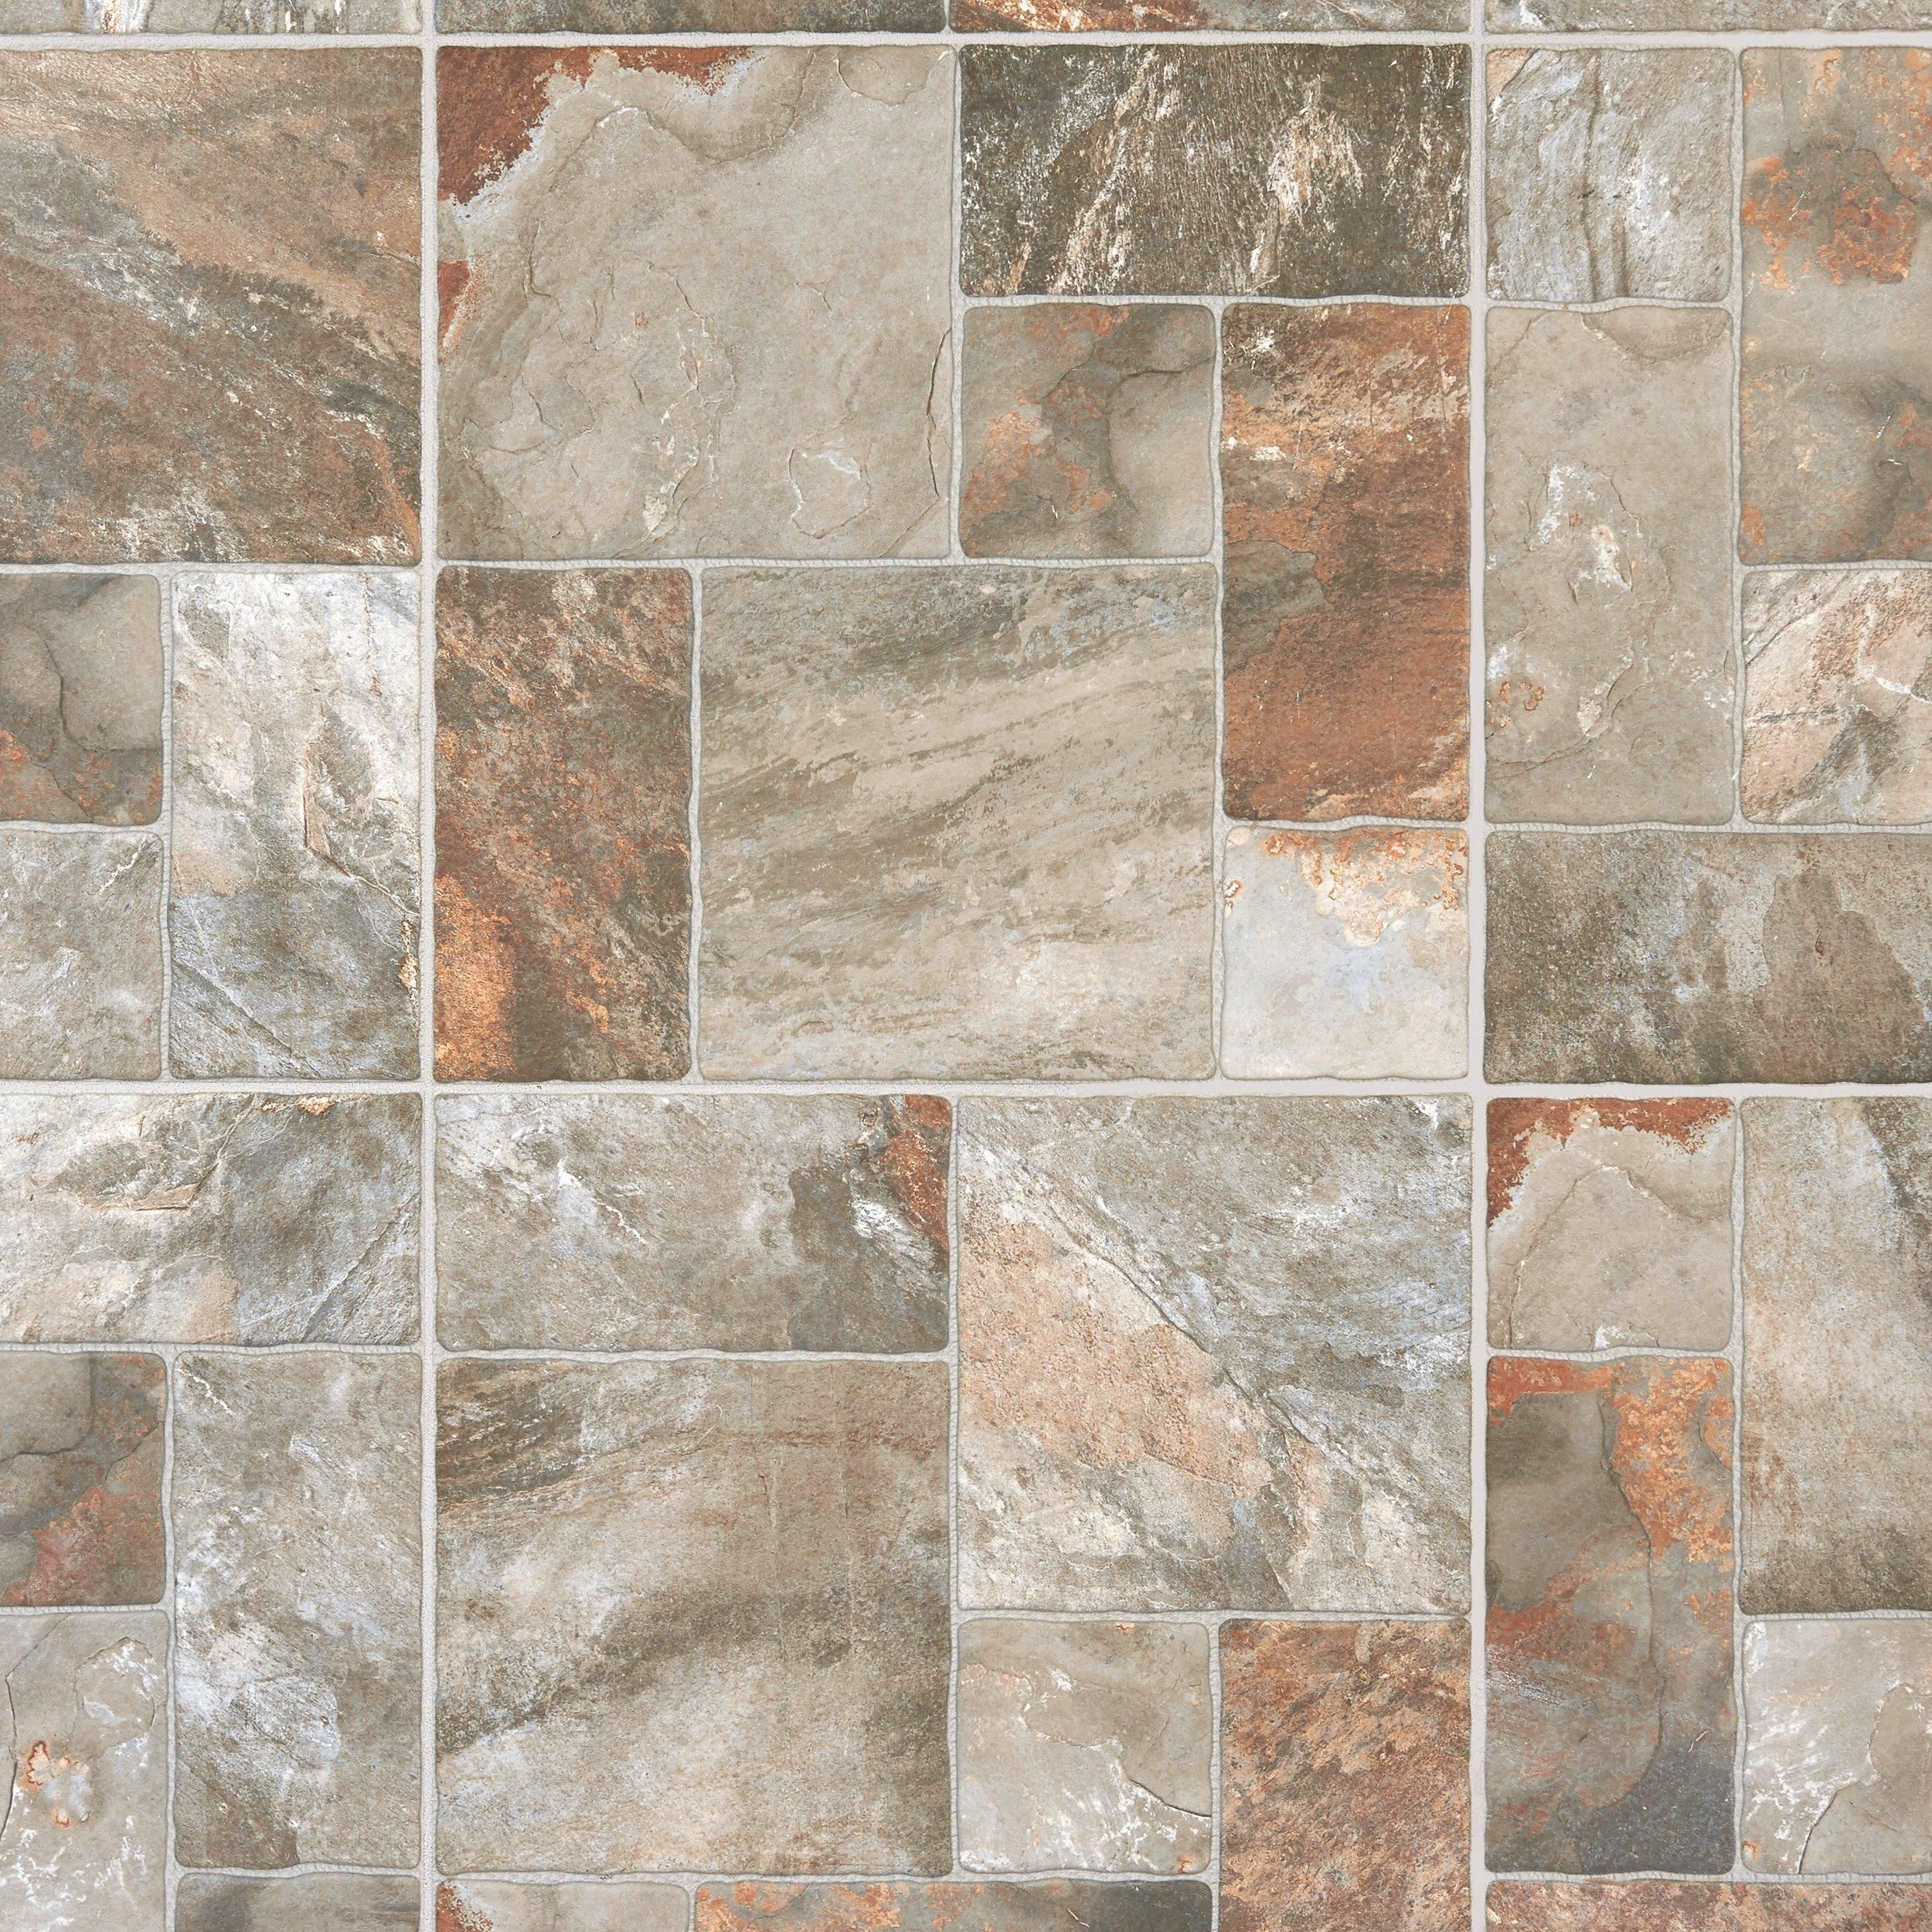 Mix Aran Stone Anti Slip Porcelain Tile Porcelain Tile Flooring Vinyl Sheet Flooring